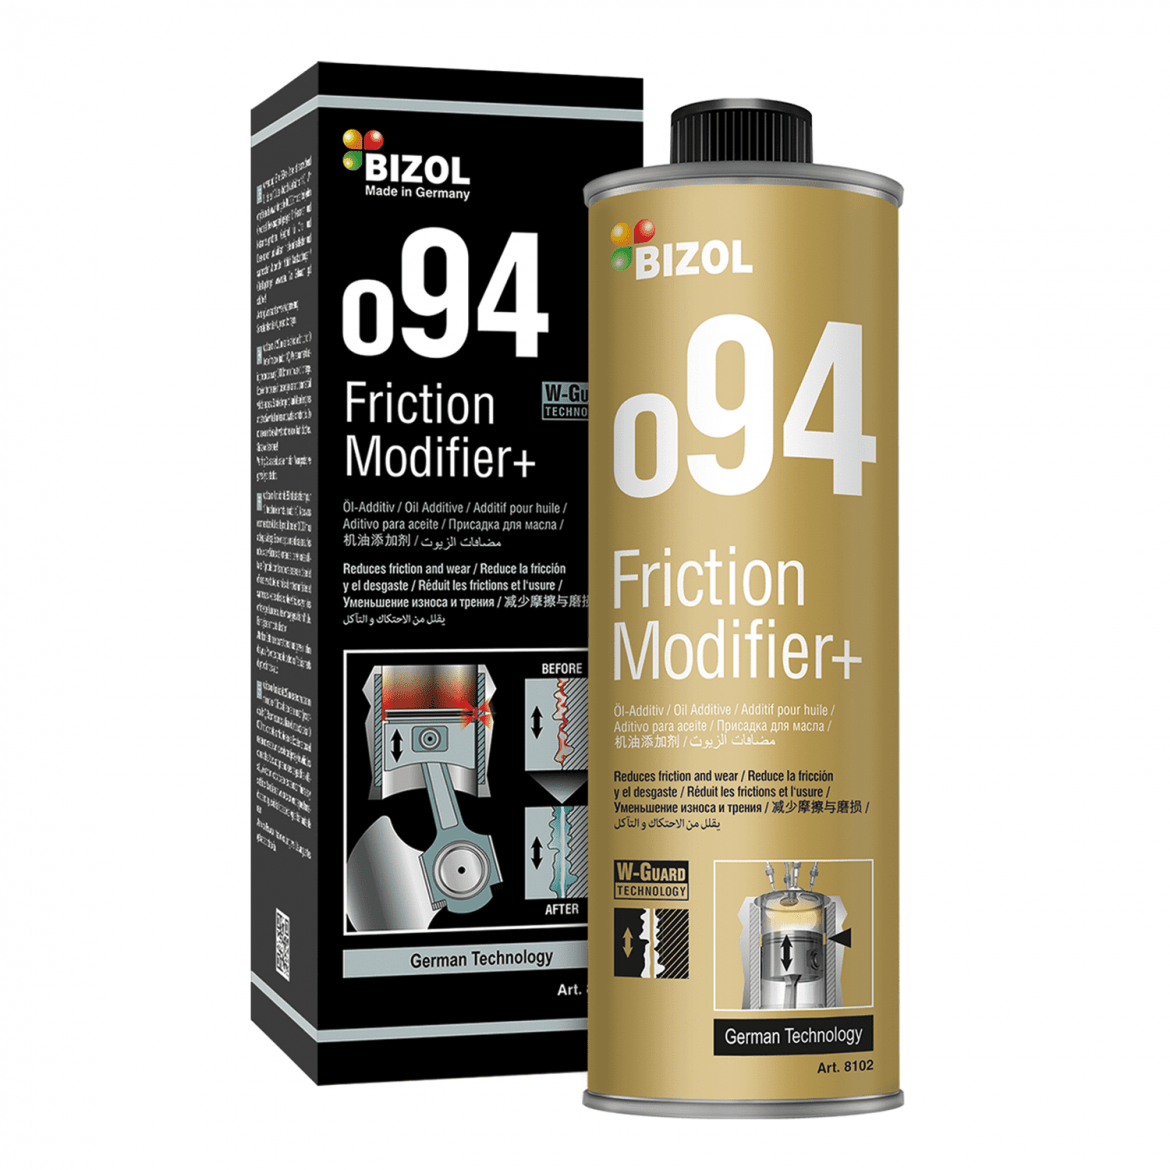 reduced-friction-friction-modifier-additiveo94-bizol